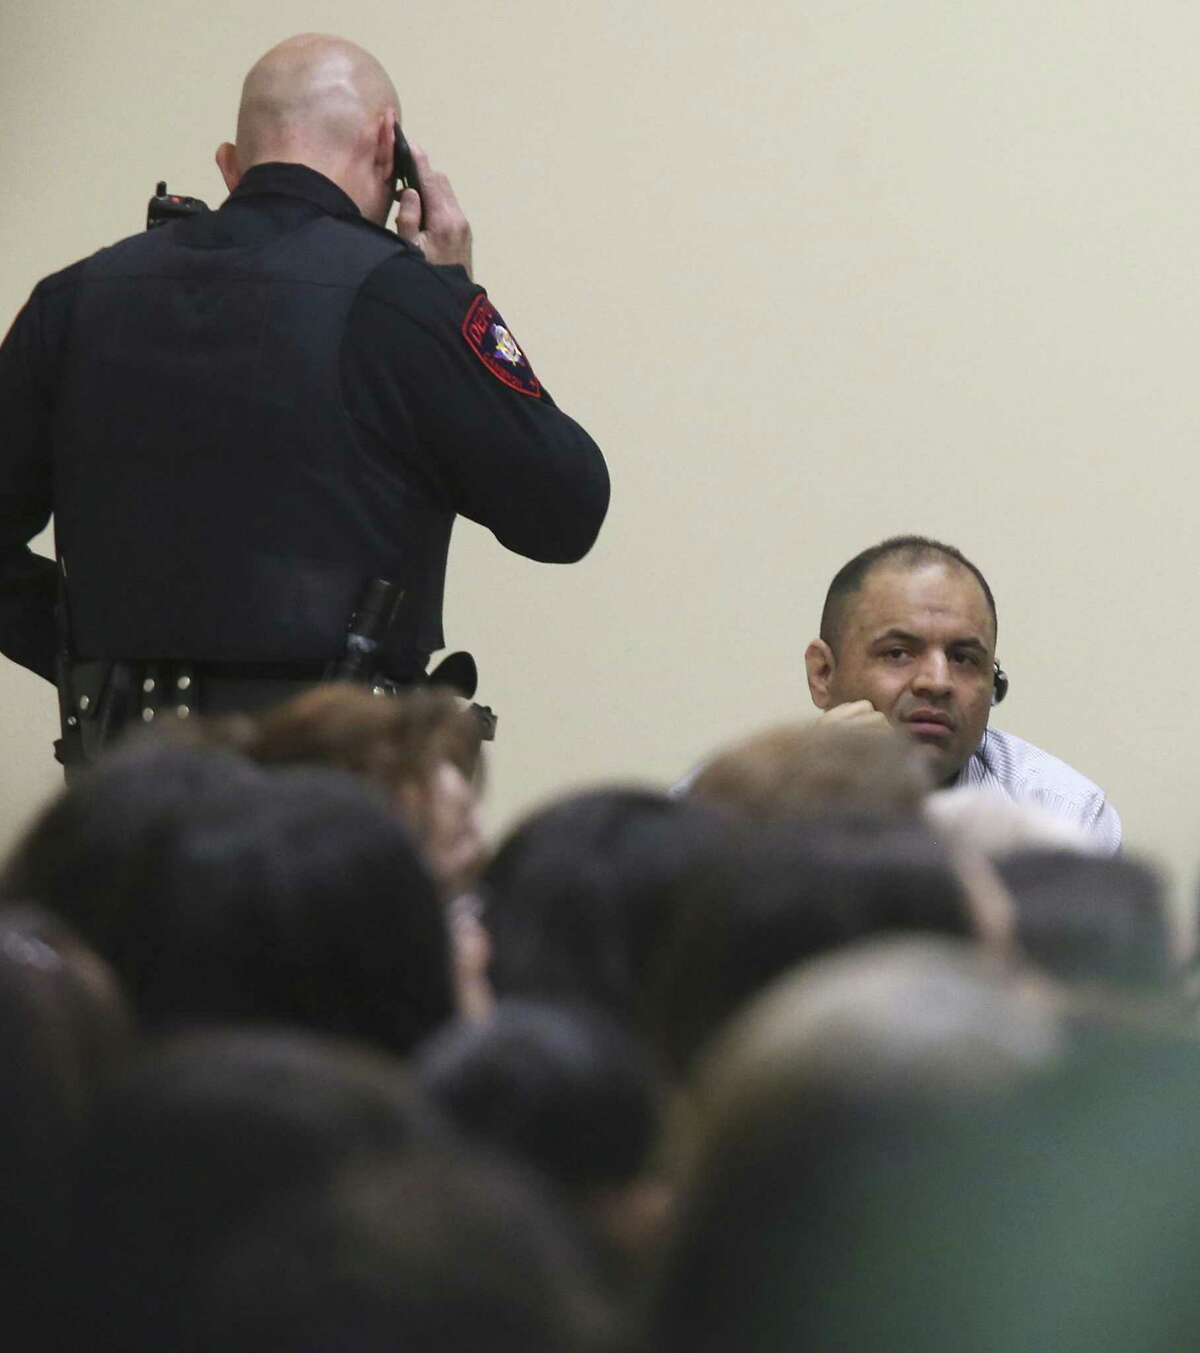 Mexican national Gustavo Tijerina-Sandoval, lower left, sits in front of the jury pool as jury selection begins in his capital murder trial in the Cameron County 197th District Court in Brownsville, Texas, Tuesday, Feb. 13, 2018. Tijerina-Sandoval is accused of killing U.S. Border Patrol agent Javier Vega in August of 2014. Vega was fishing with his family in Santa Monica, a secluded area near Harlingen, when two men attempted to rob the group. Vega pulled out his weapon and was shot in the chest. He died en route to the hospital. Tijerina-Sandoval and Ismael Hernandez-Vallejo are both charged in Vega's death, but their trials will be held separately. One of his attorneys Nat Perez, Jr. is on the right.